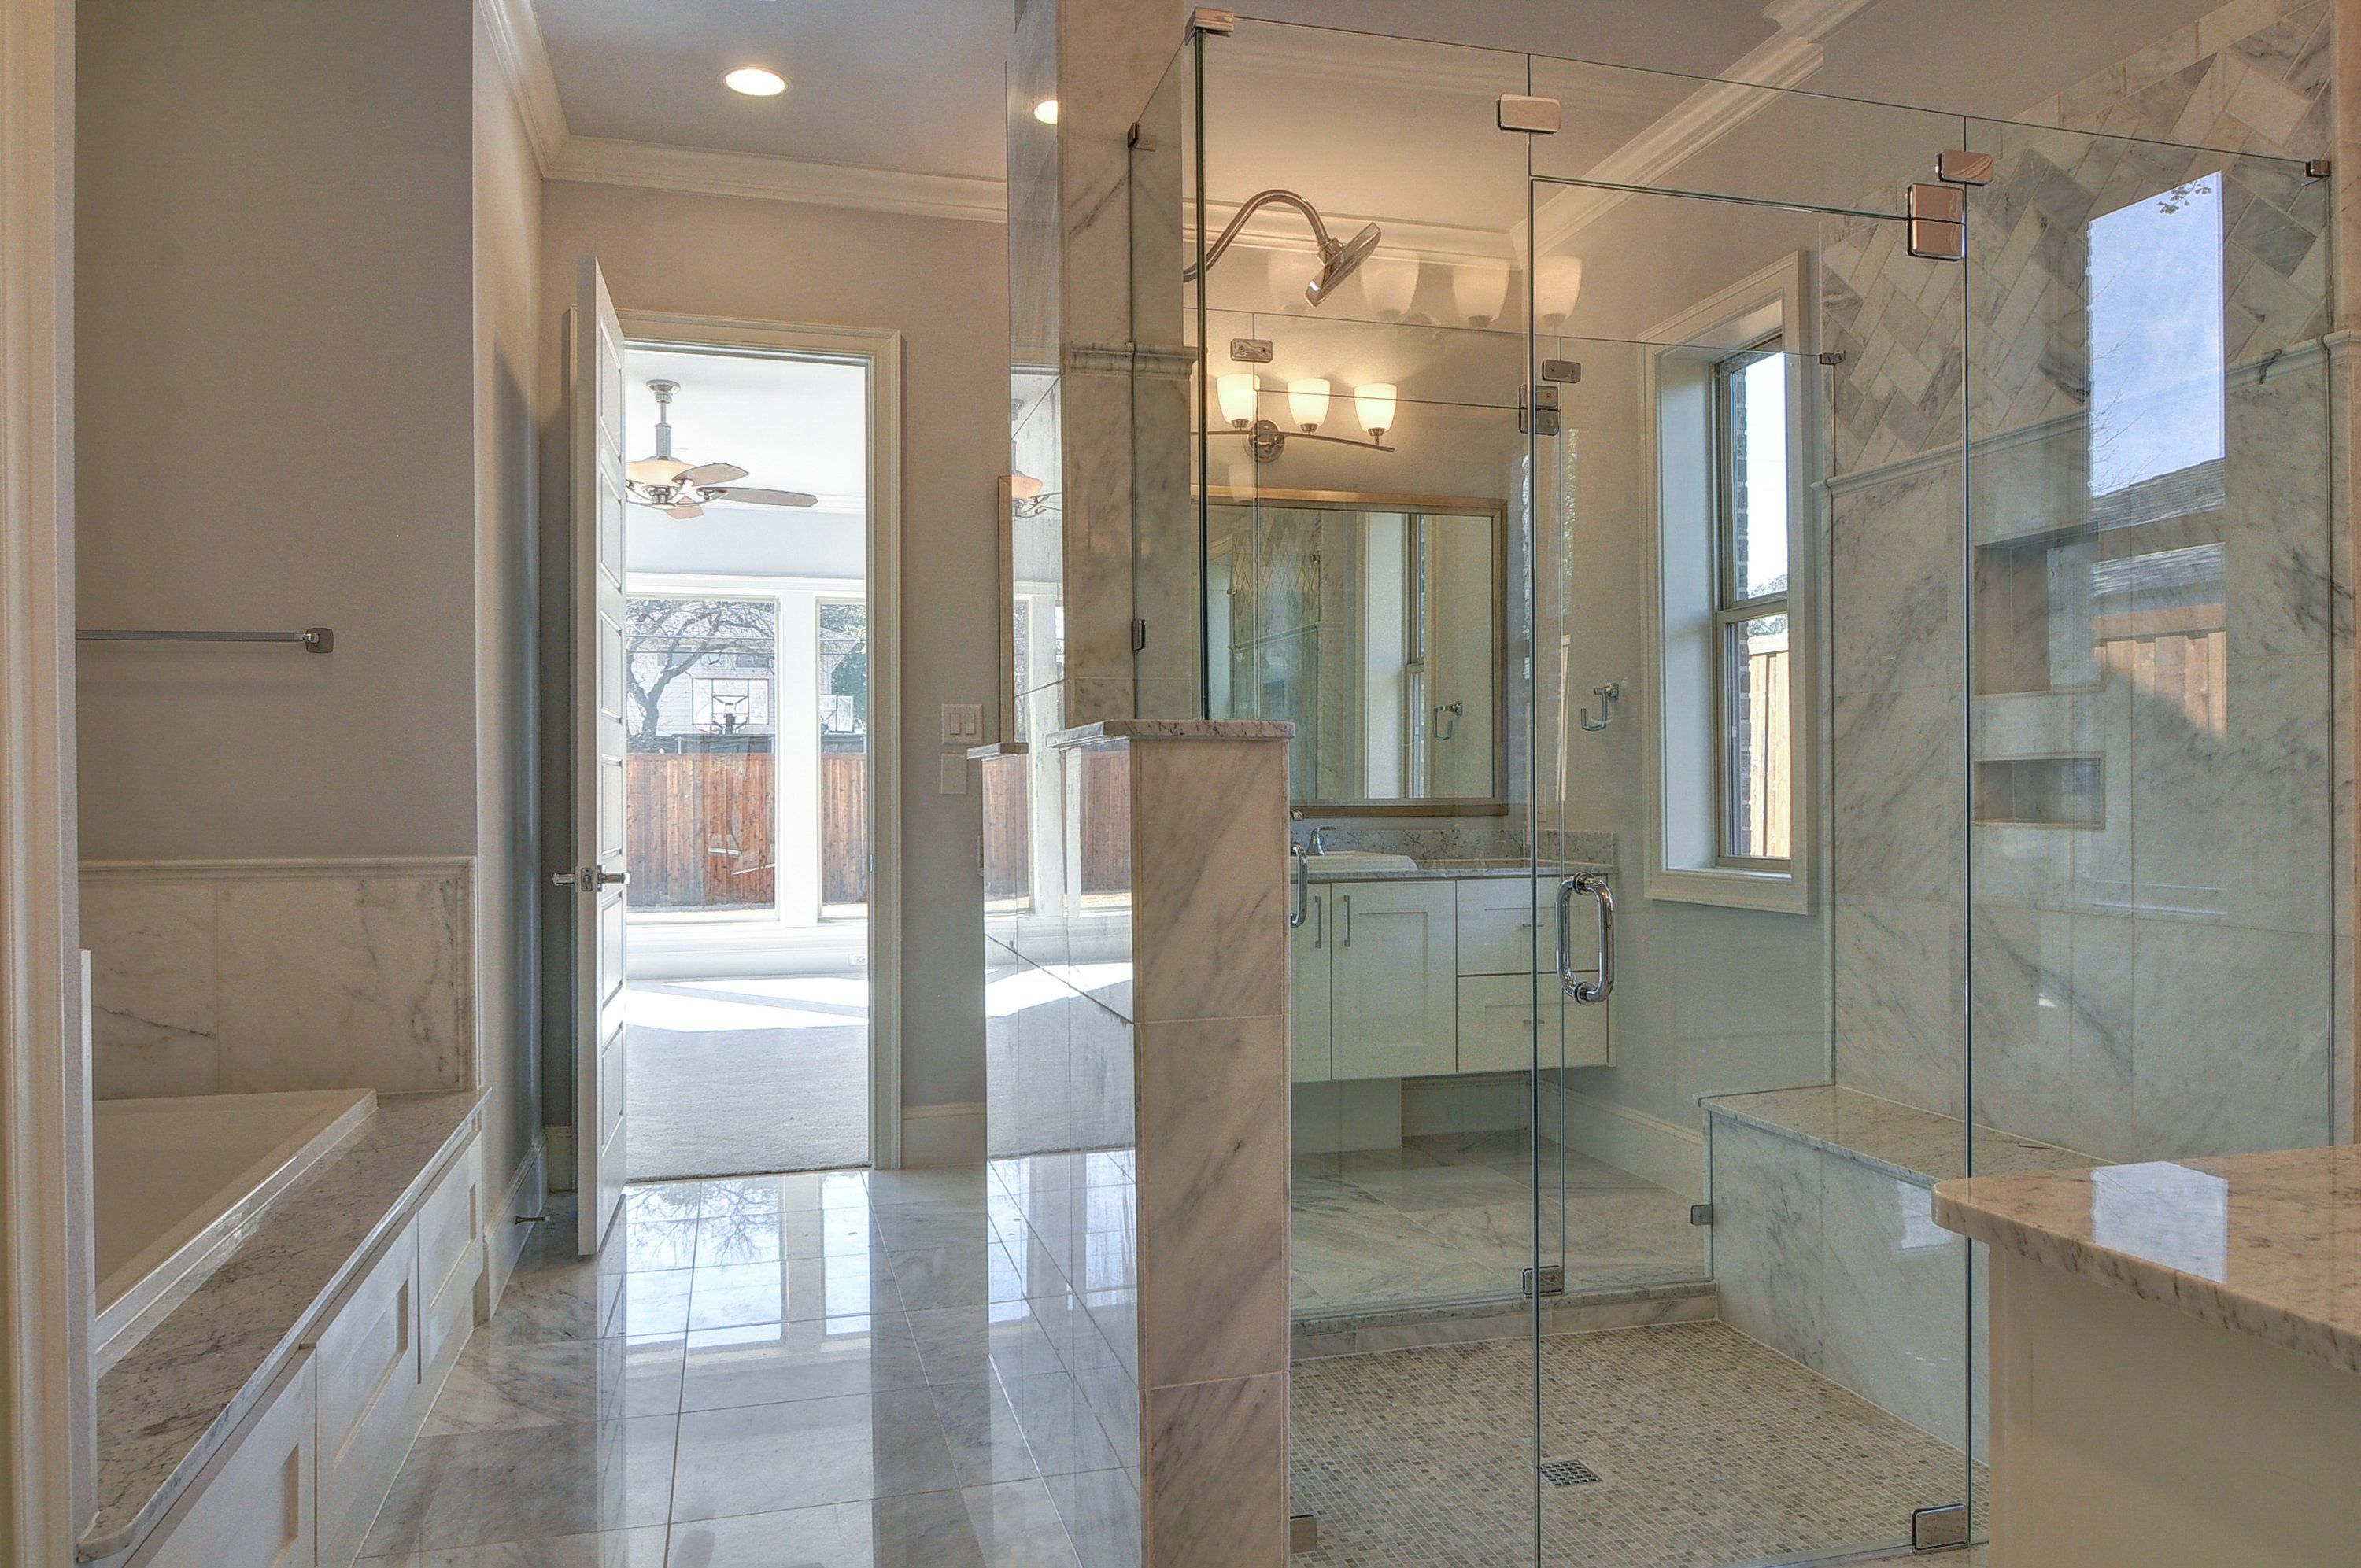 Houzz's 7 Bathroom Trends for 2014 are ...